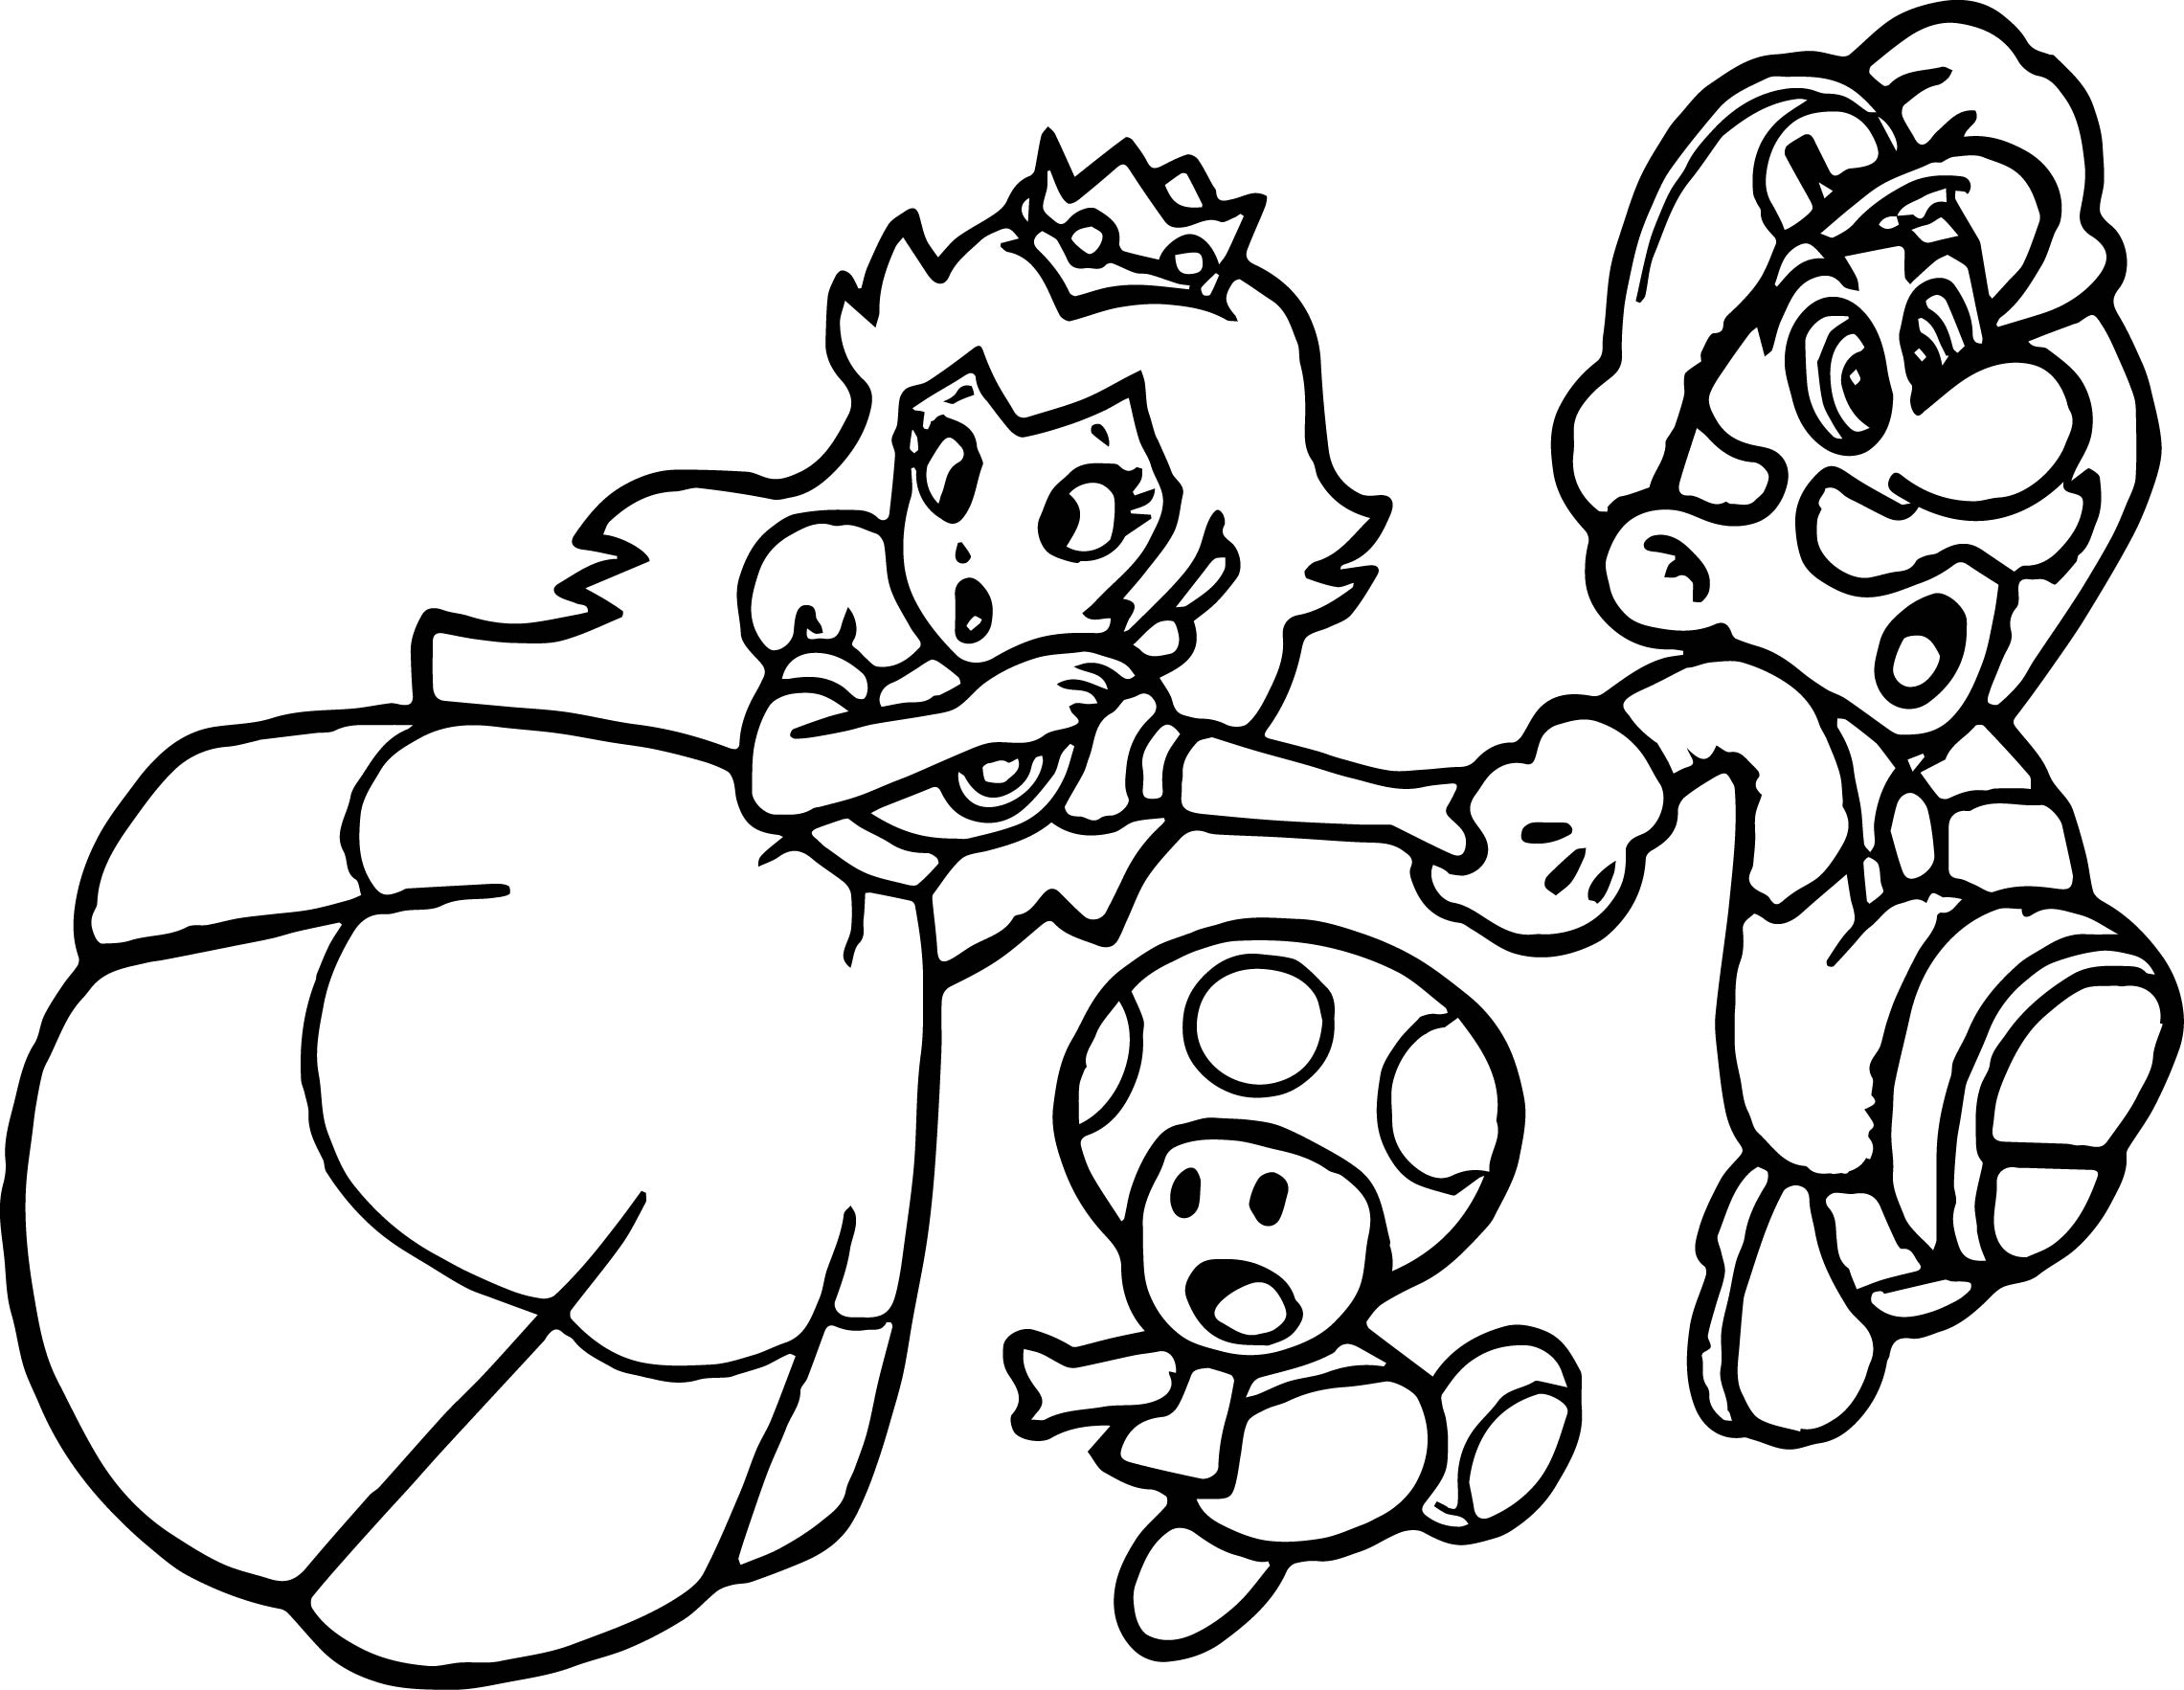 mario color pages mario coloring pages themes best apps for kids pages color mario 1 1